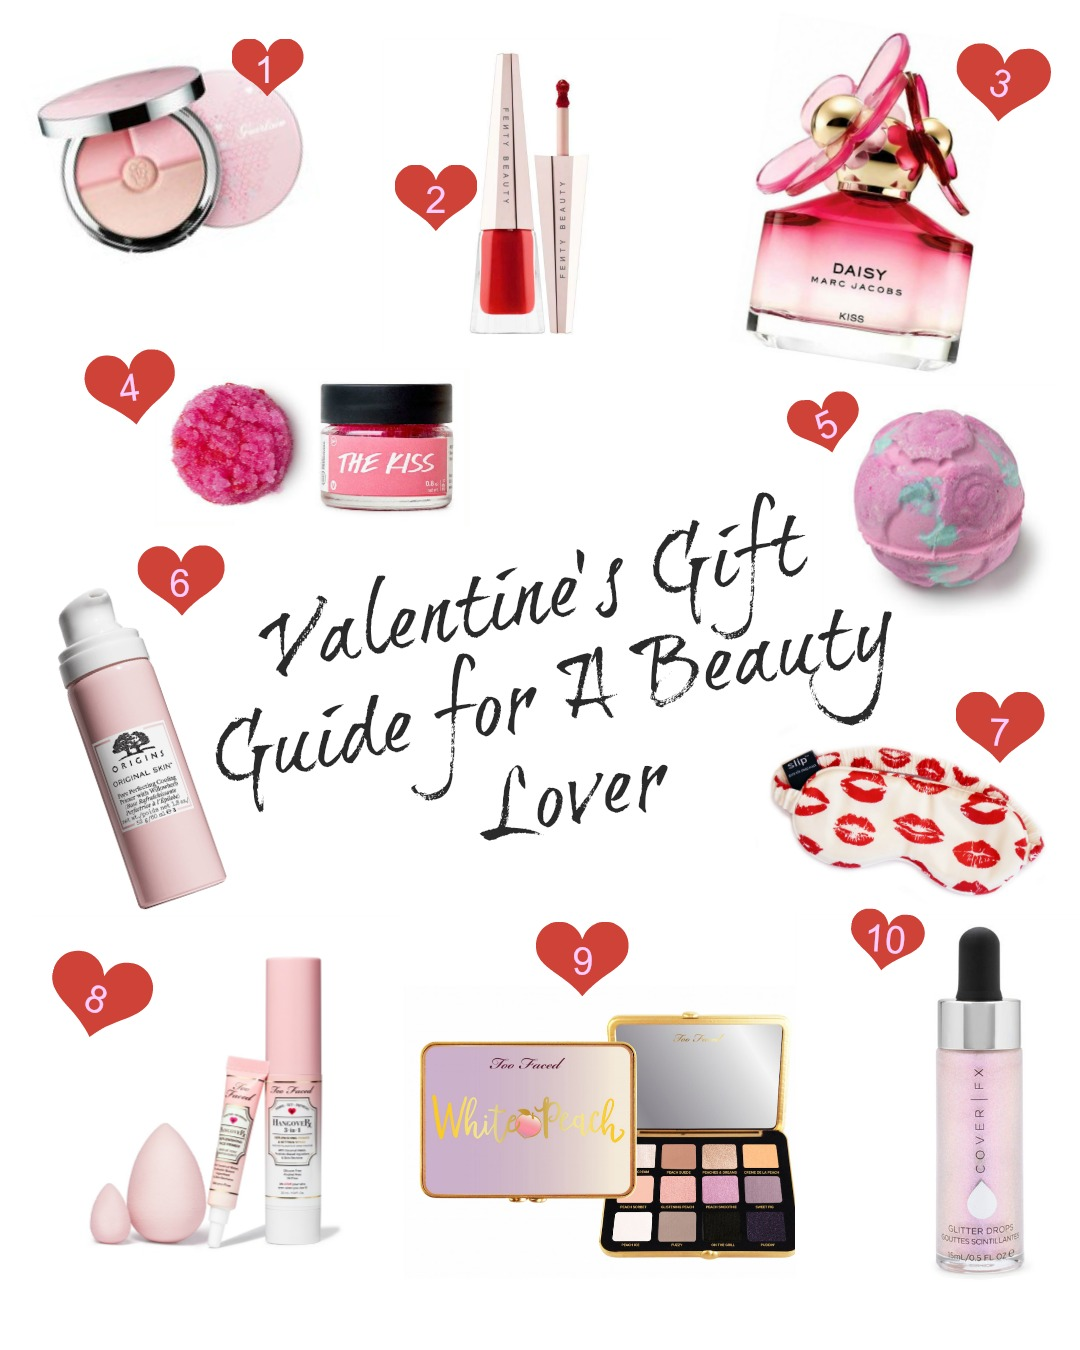 Valentine's Day Gift Guide for A Beauty Lover